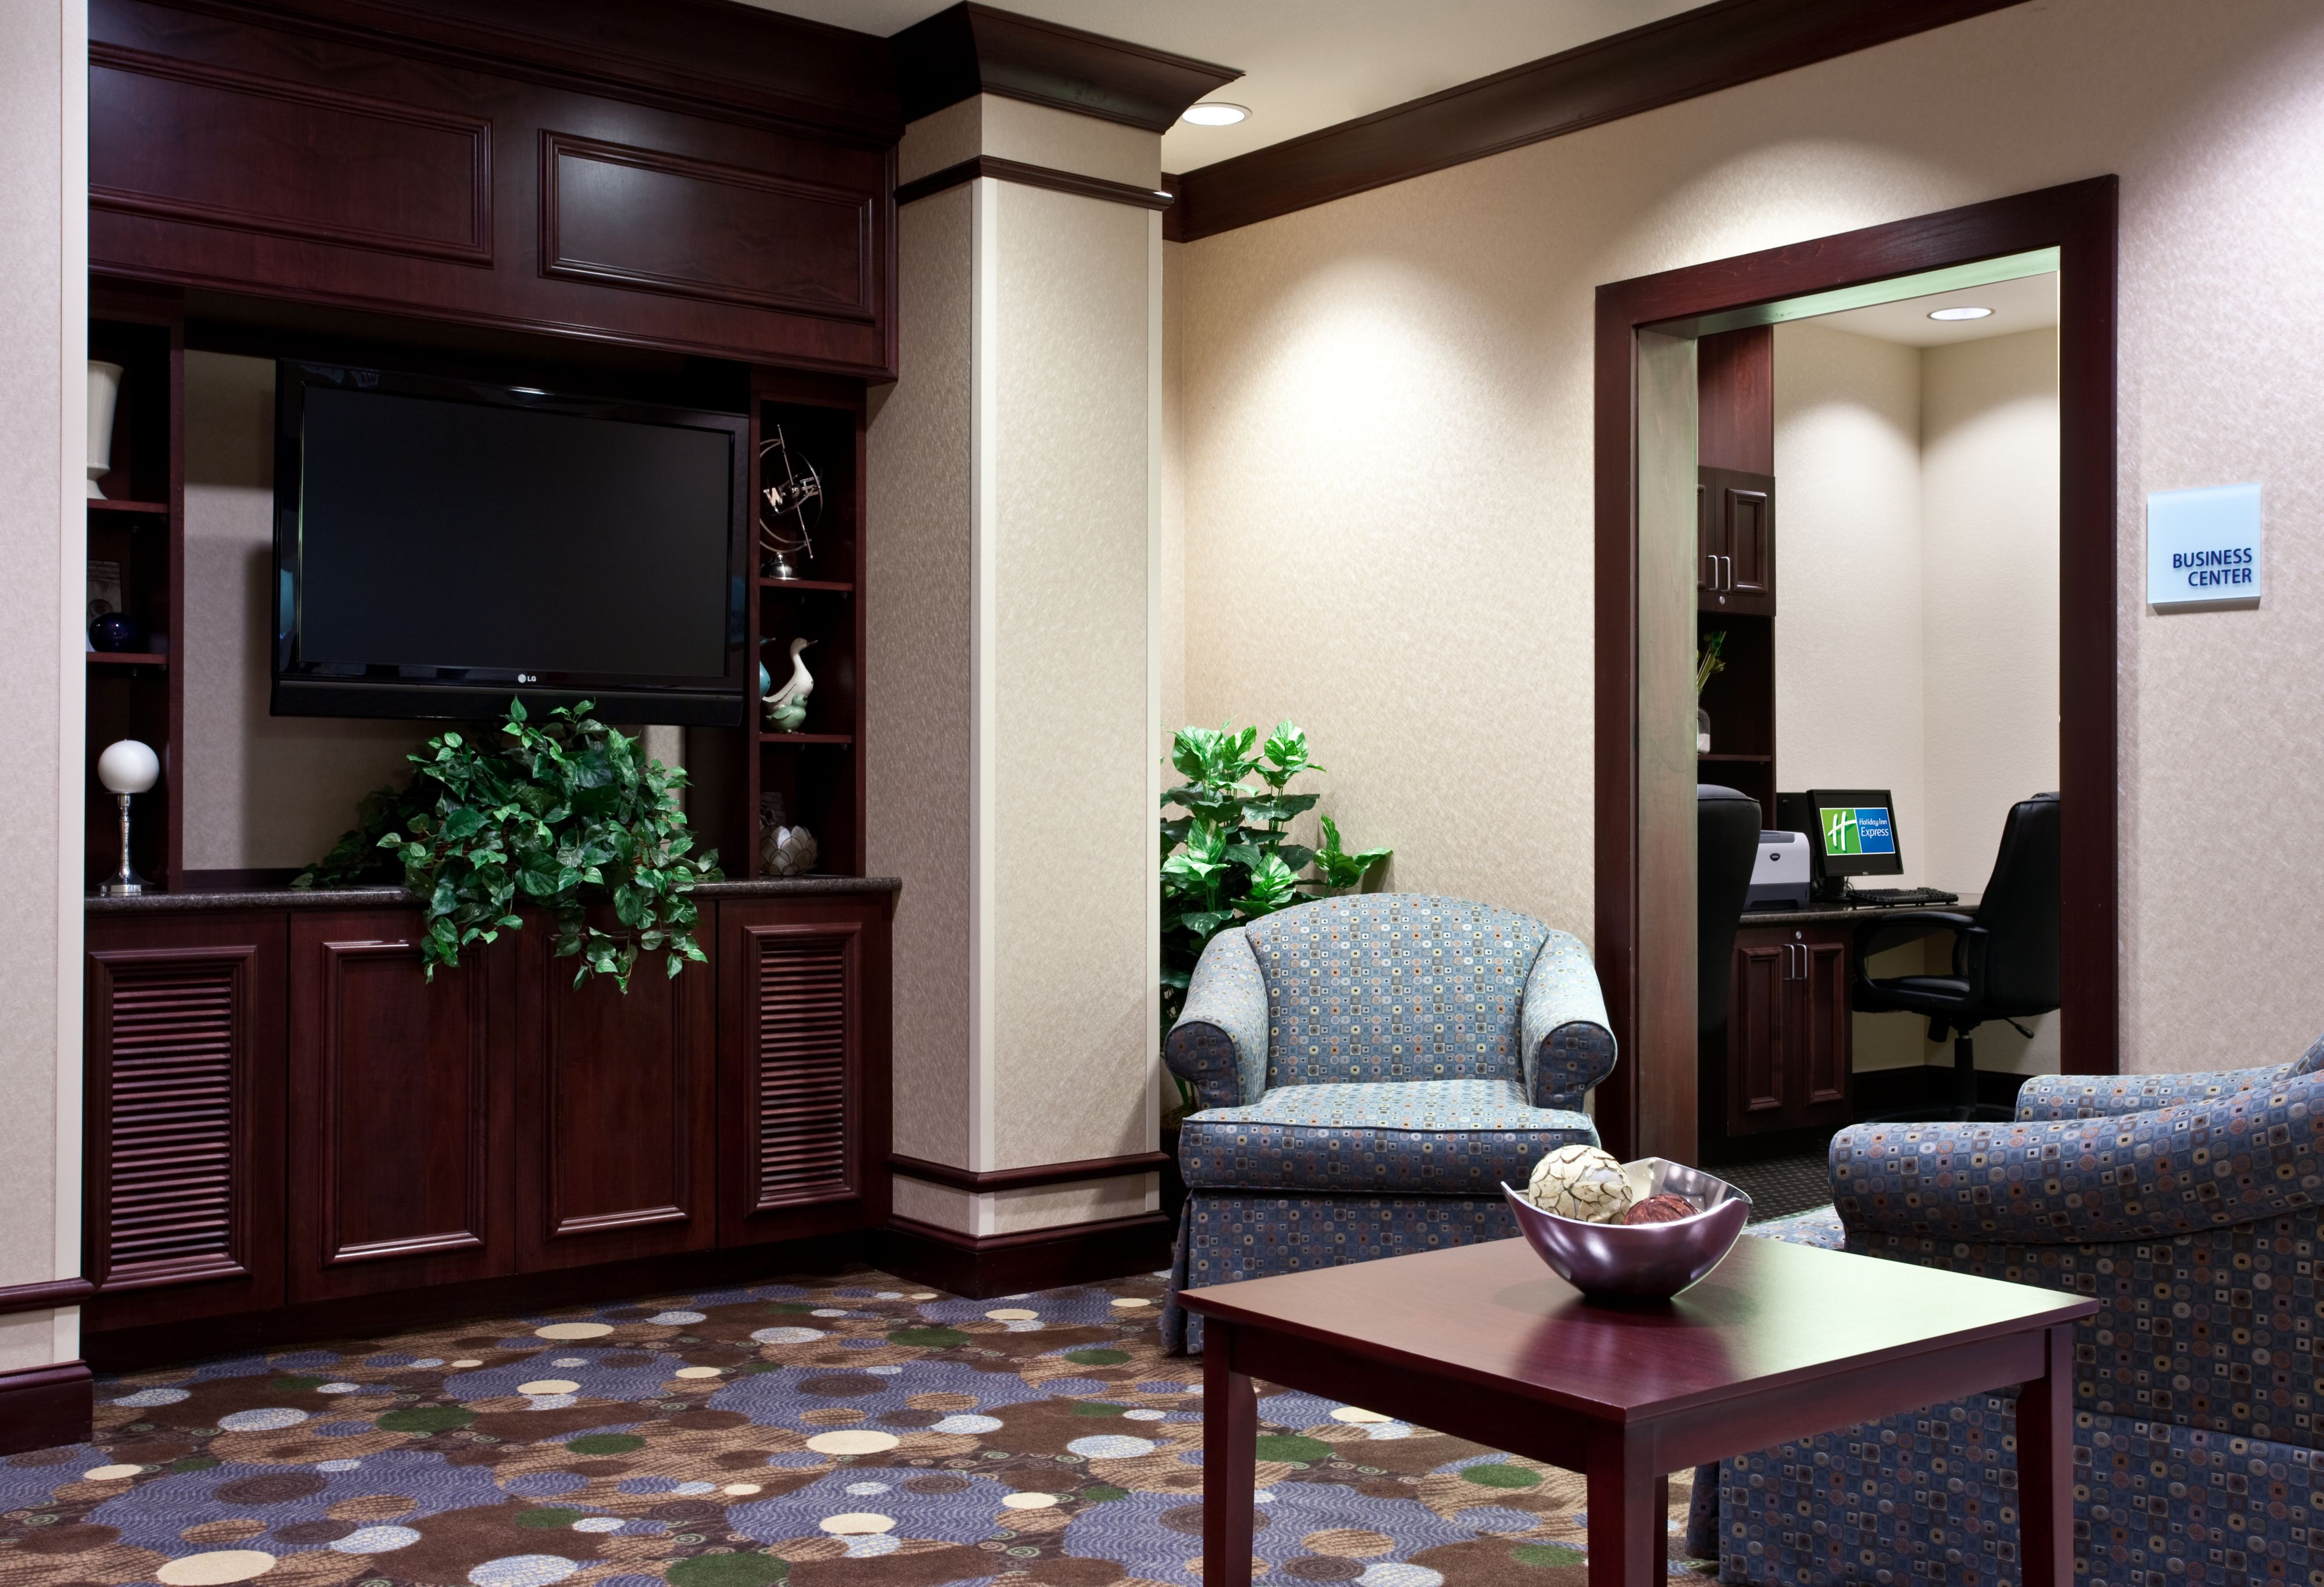 Holiday Inn Express & Suites Chicago West-O'Hare Arpt Area image 5